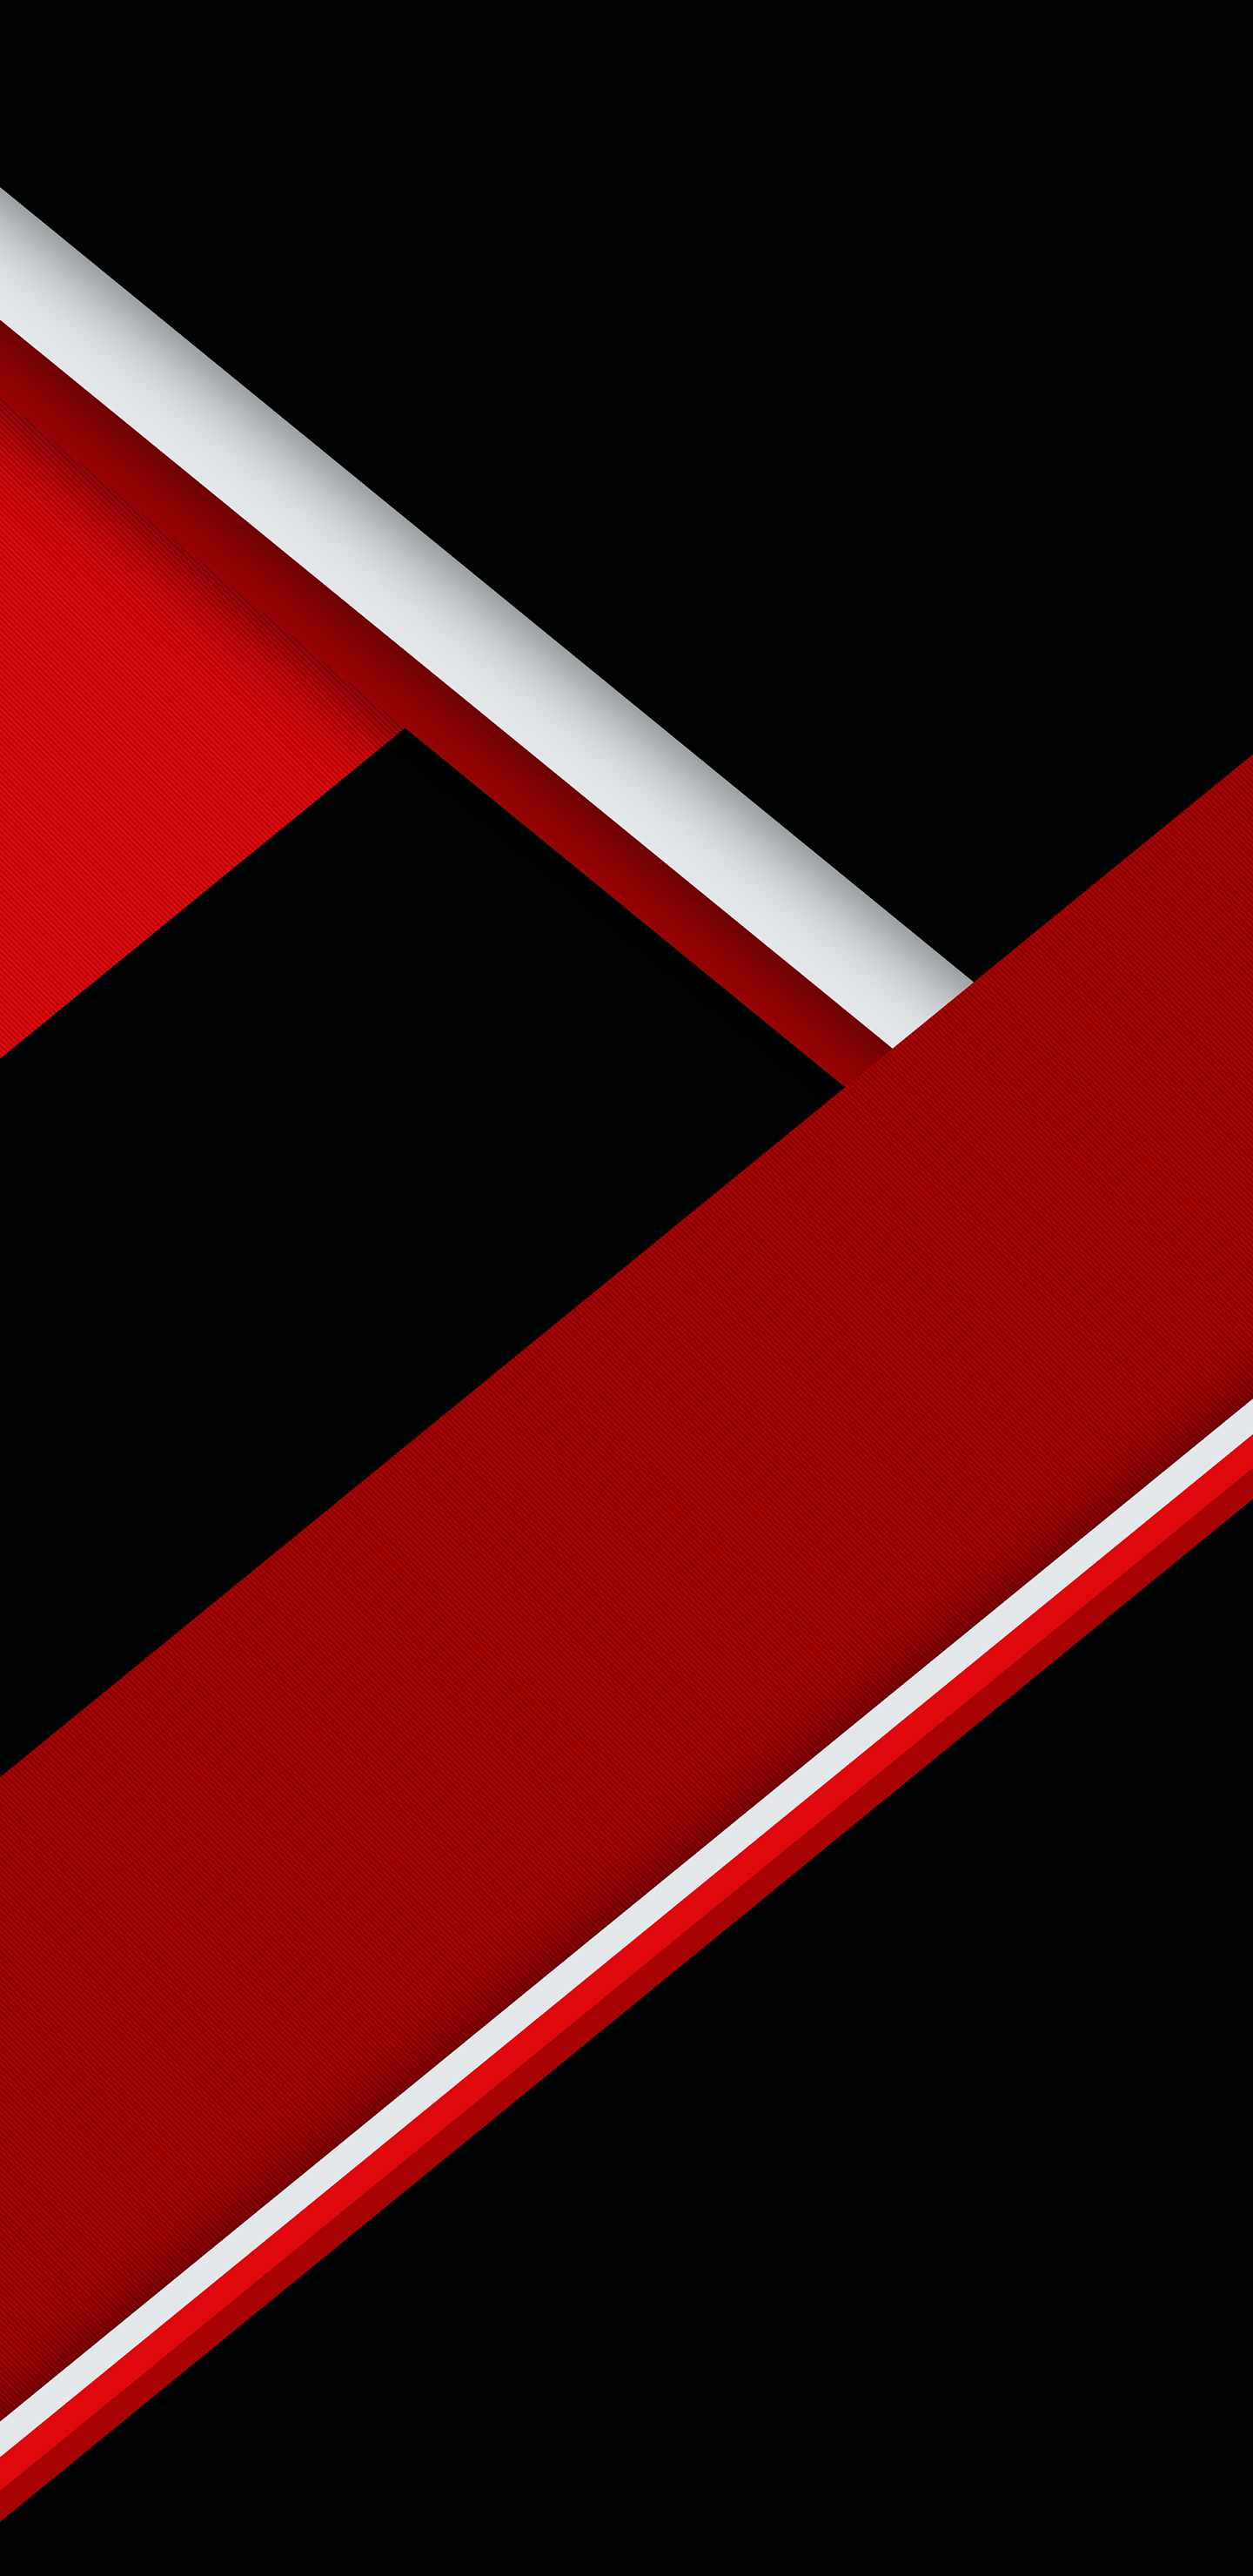 1440x2960 Red Black Texture Shapes Abstract 4k Samsung Galaxy Note 9 8 S9 S8 S8 Qhd Hd 4k Wallpapers Images Backgrounds Photos And Pictures